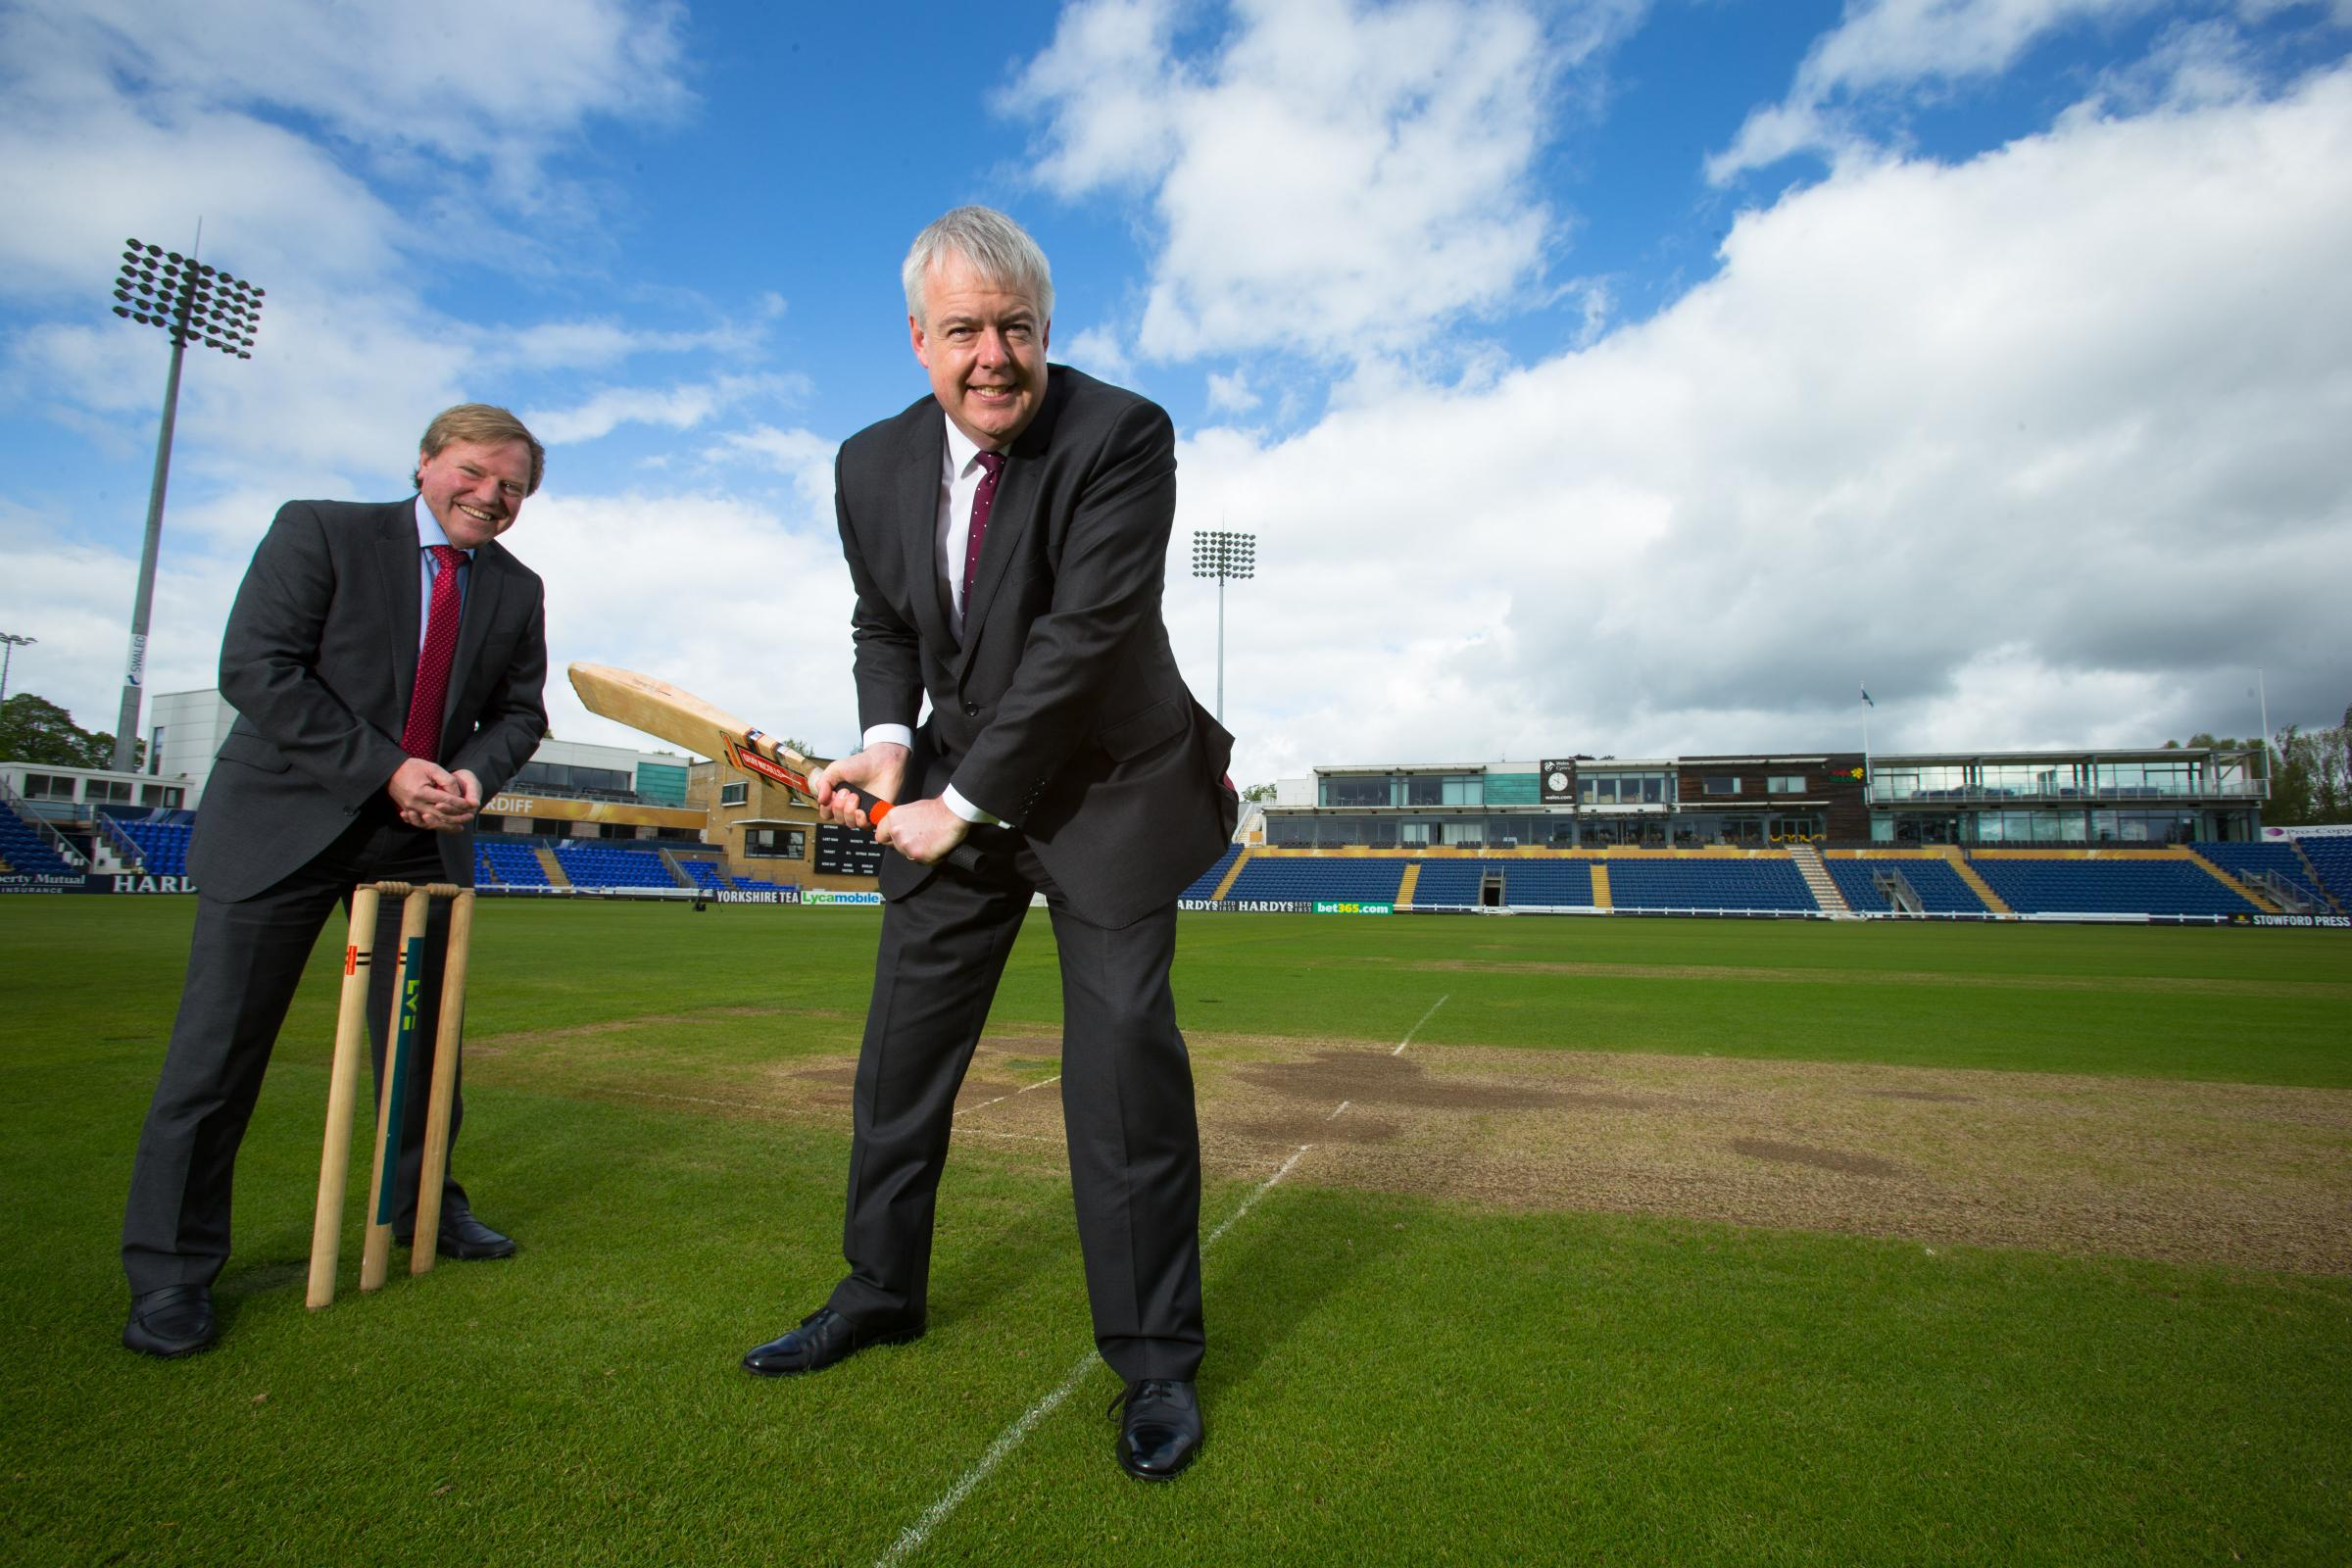 DELIGHTED: Glamorgan cricket chief executive Hugh Morris, left, and First Minister Carwyn Jones